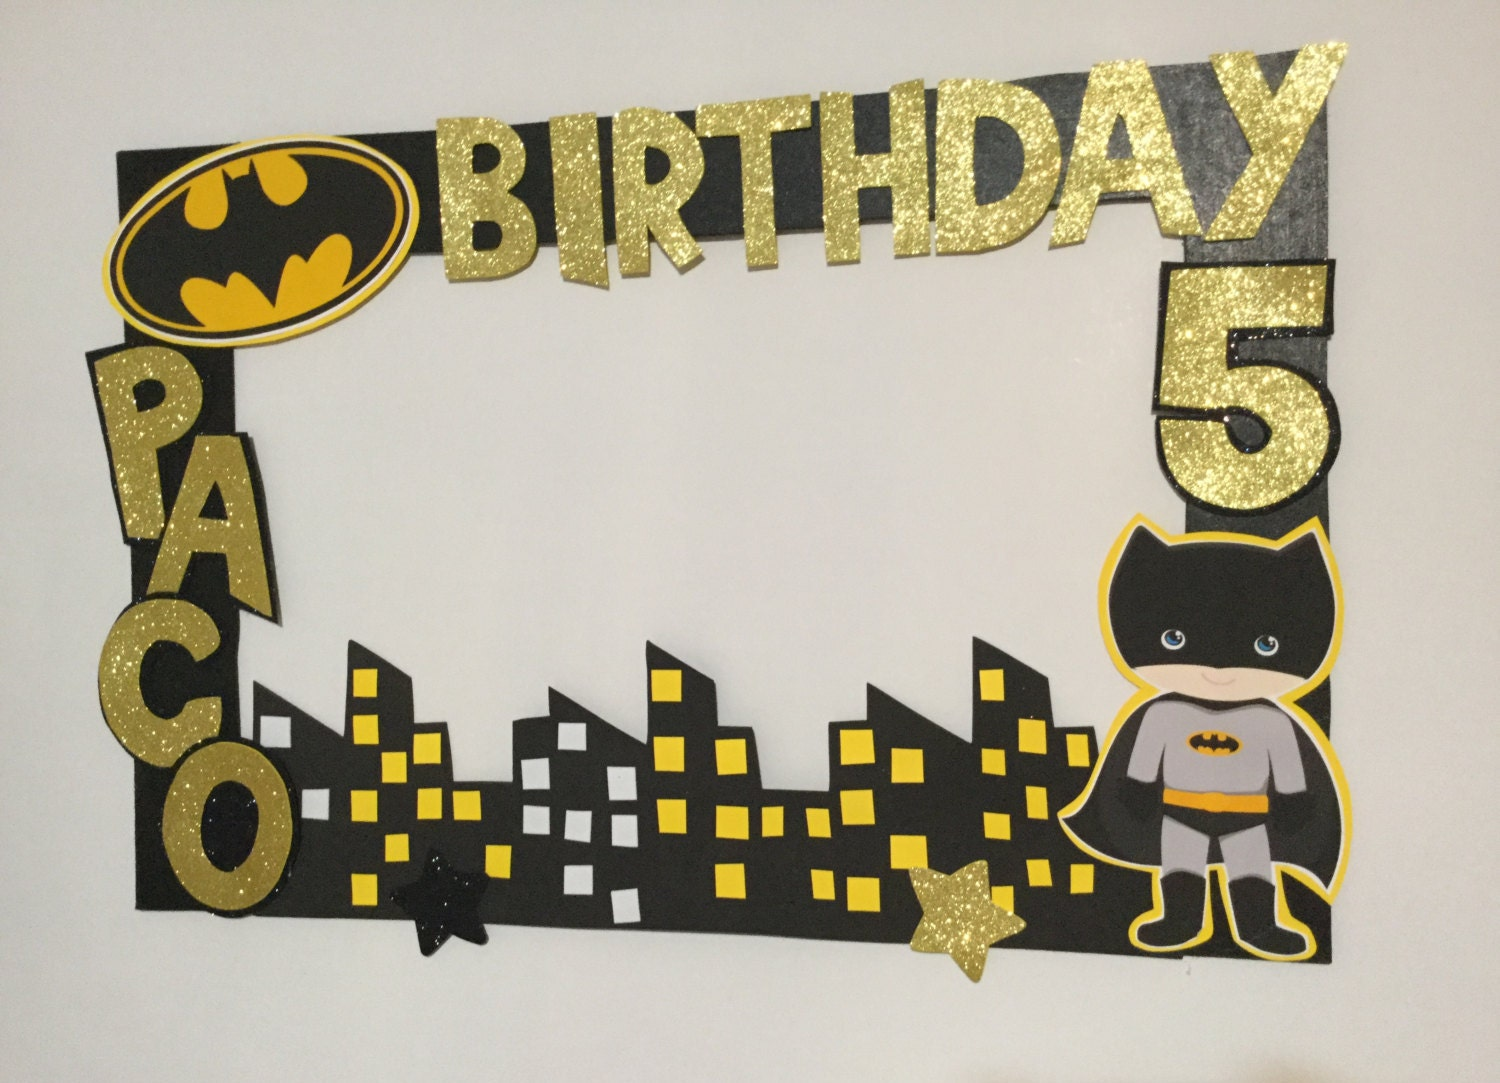 batman birthday batman photo booth frame batman photo frame prop superheroes birthday batman party decoration superheroes party frame